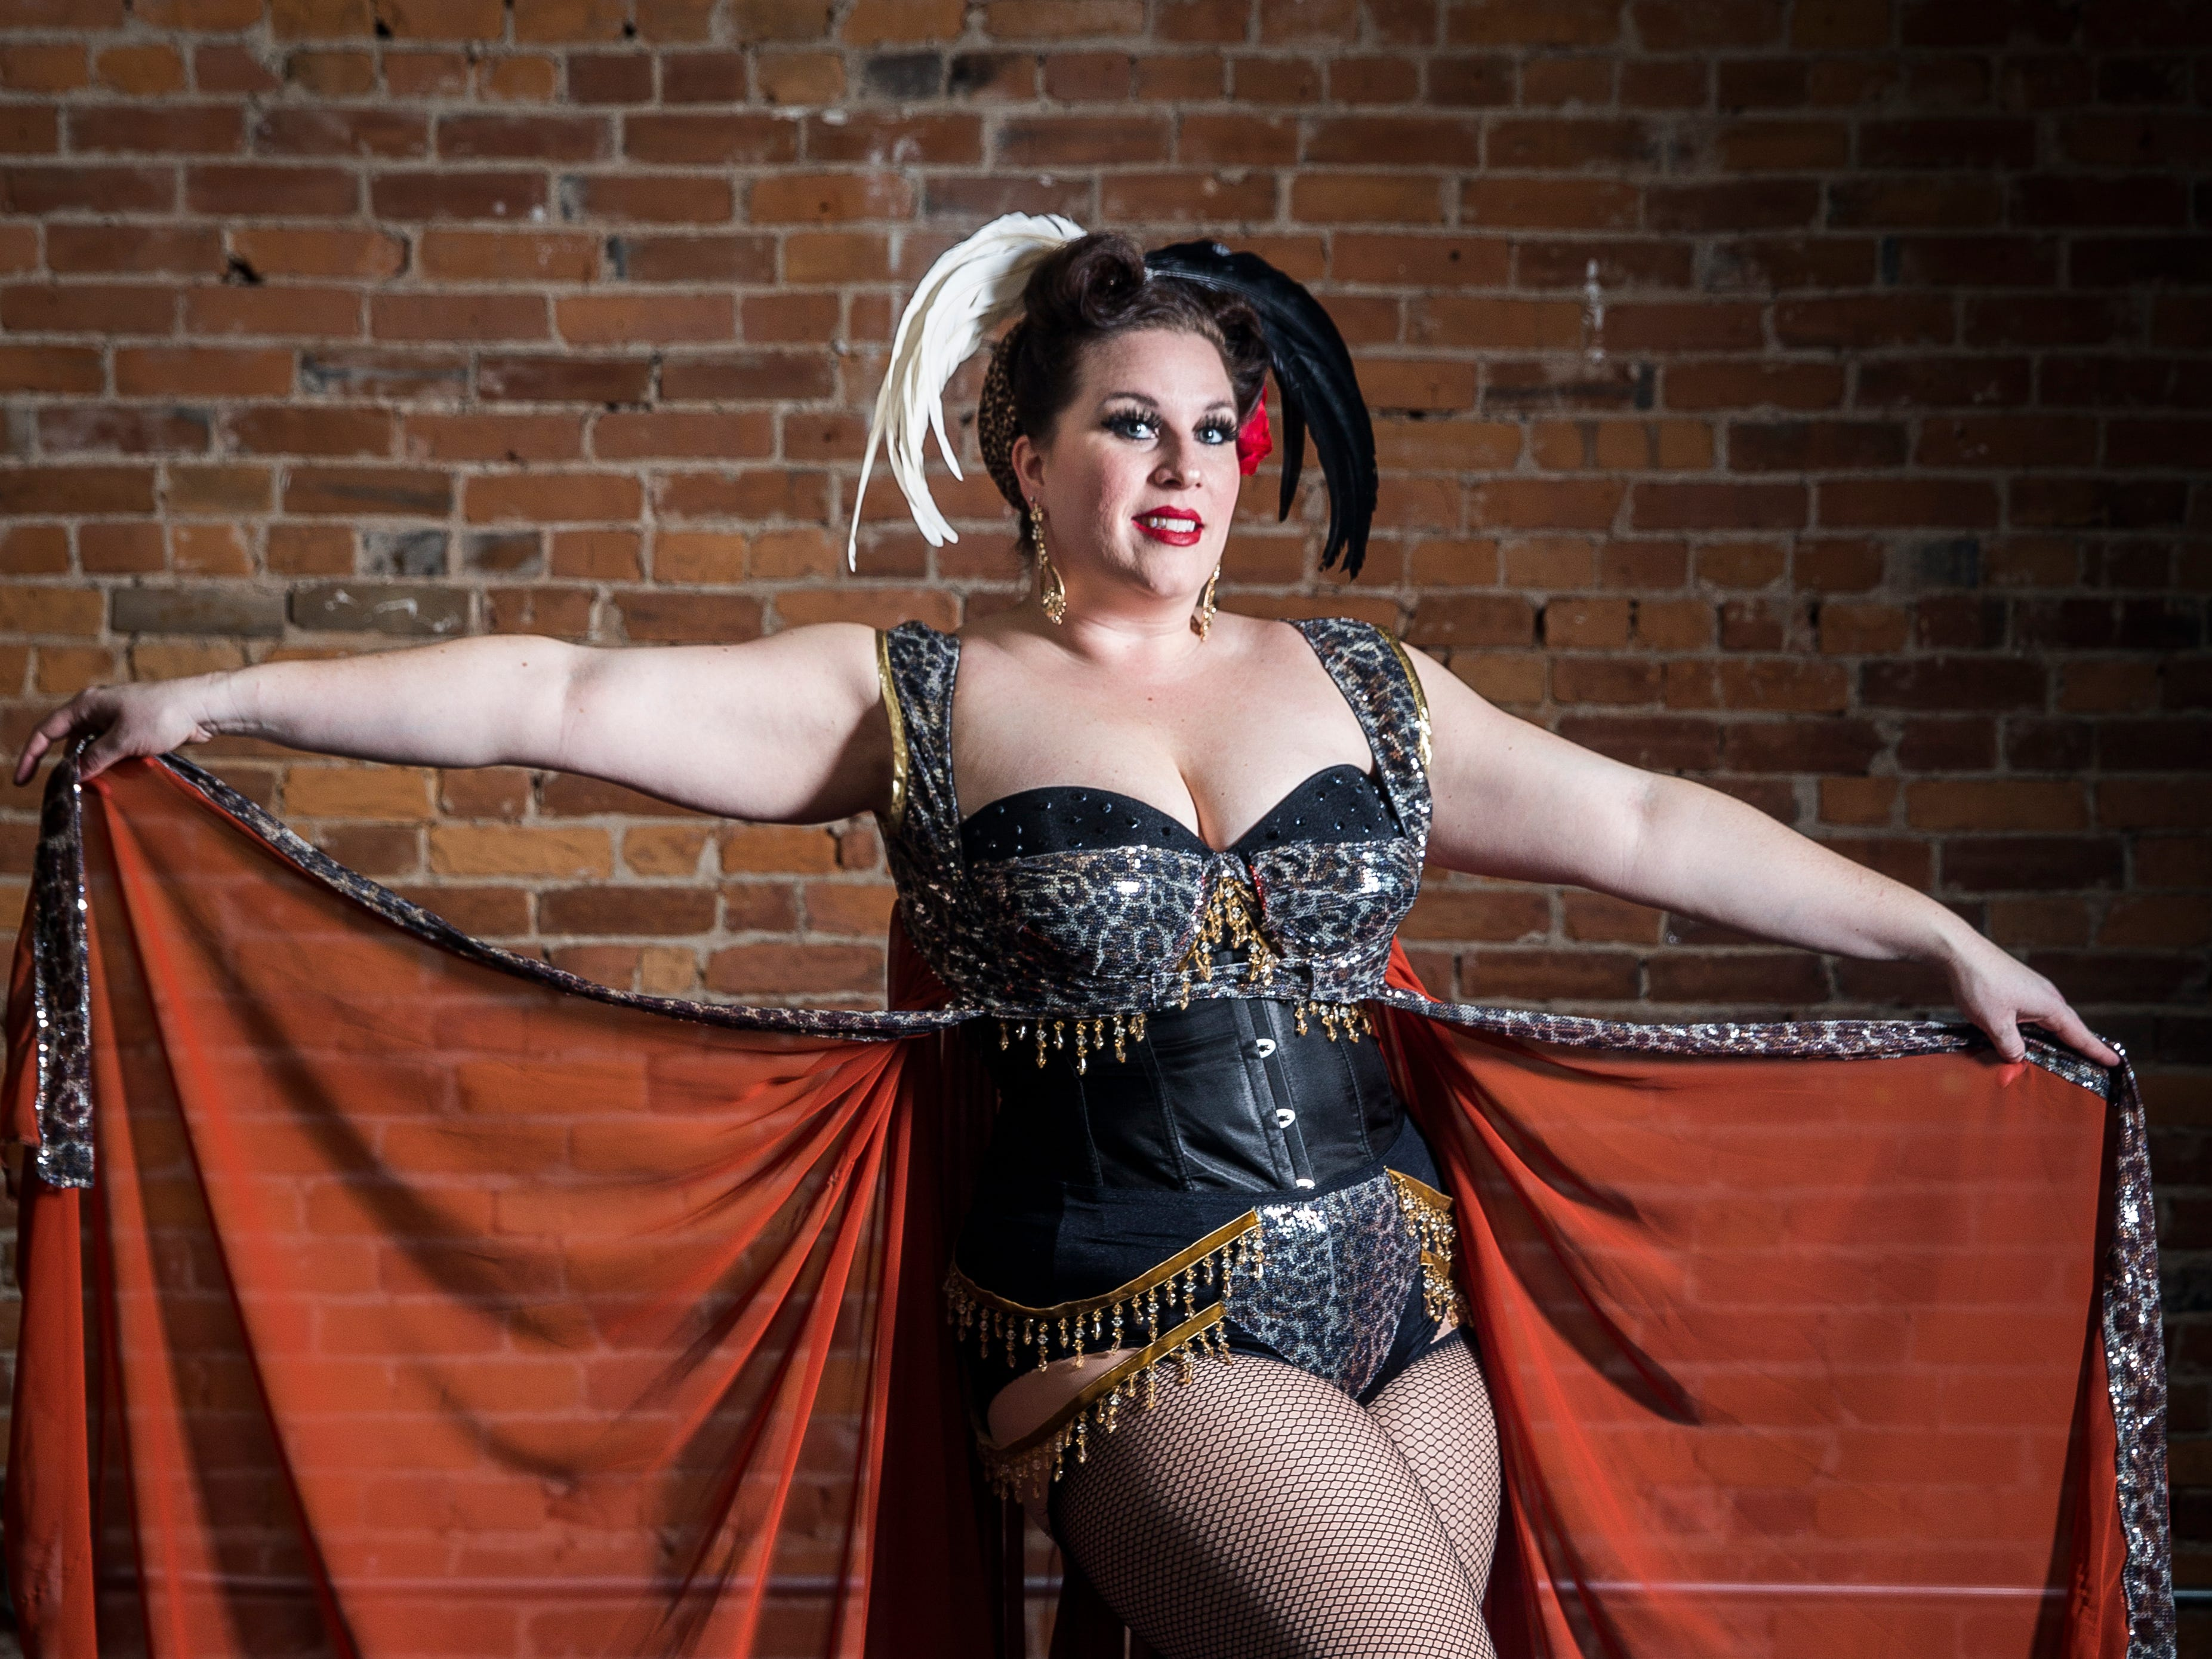 Fabulous Funcie Femmes performer Minx Le Mew in and out of character.